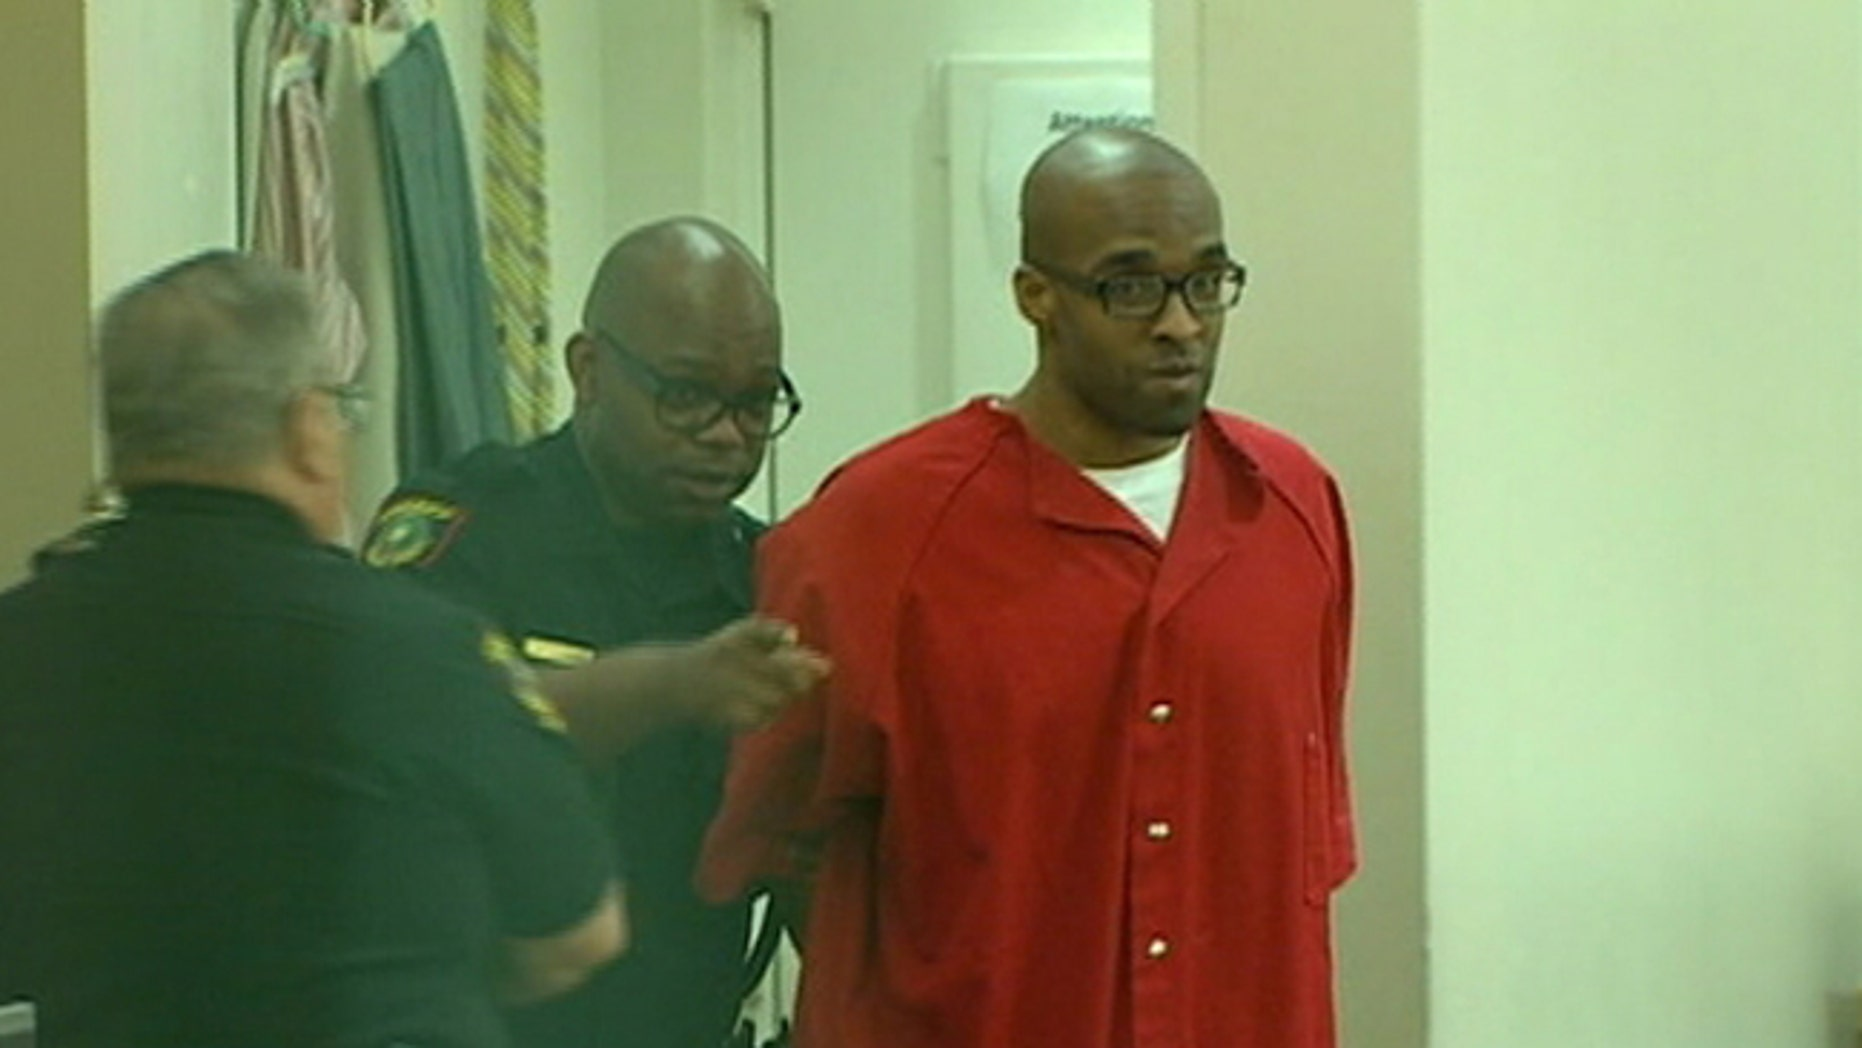 A man is scheduled to be executed in three weeks for murdering a Hurst Putt Putt golf manager in 2006. But the family of victim Jonas Cherry is now fighting to have the killer's life spared -- and the system may not let them.